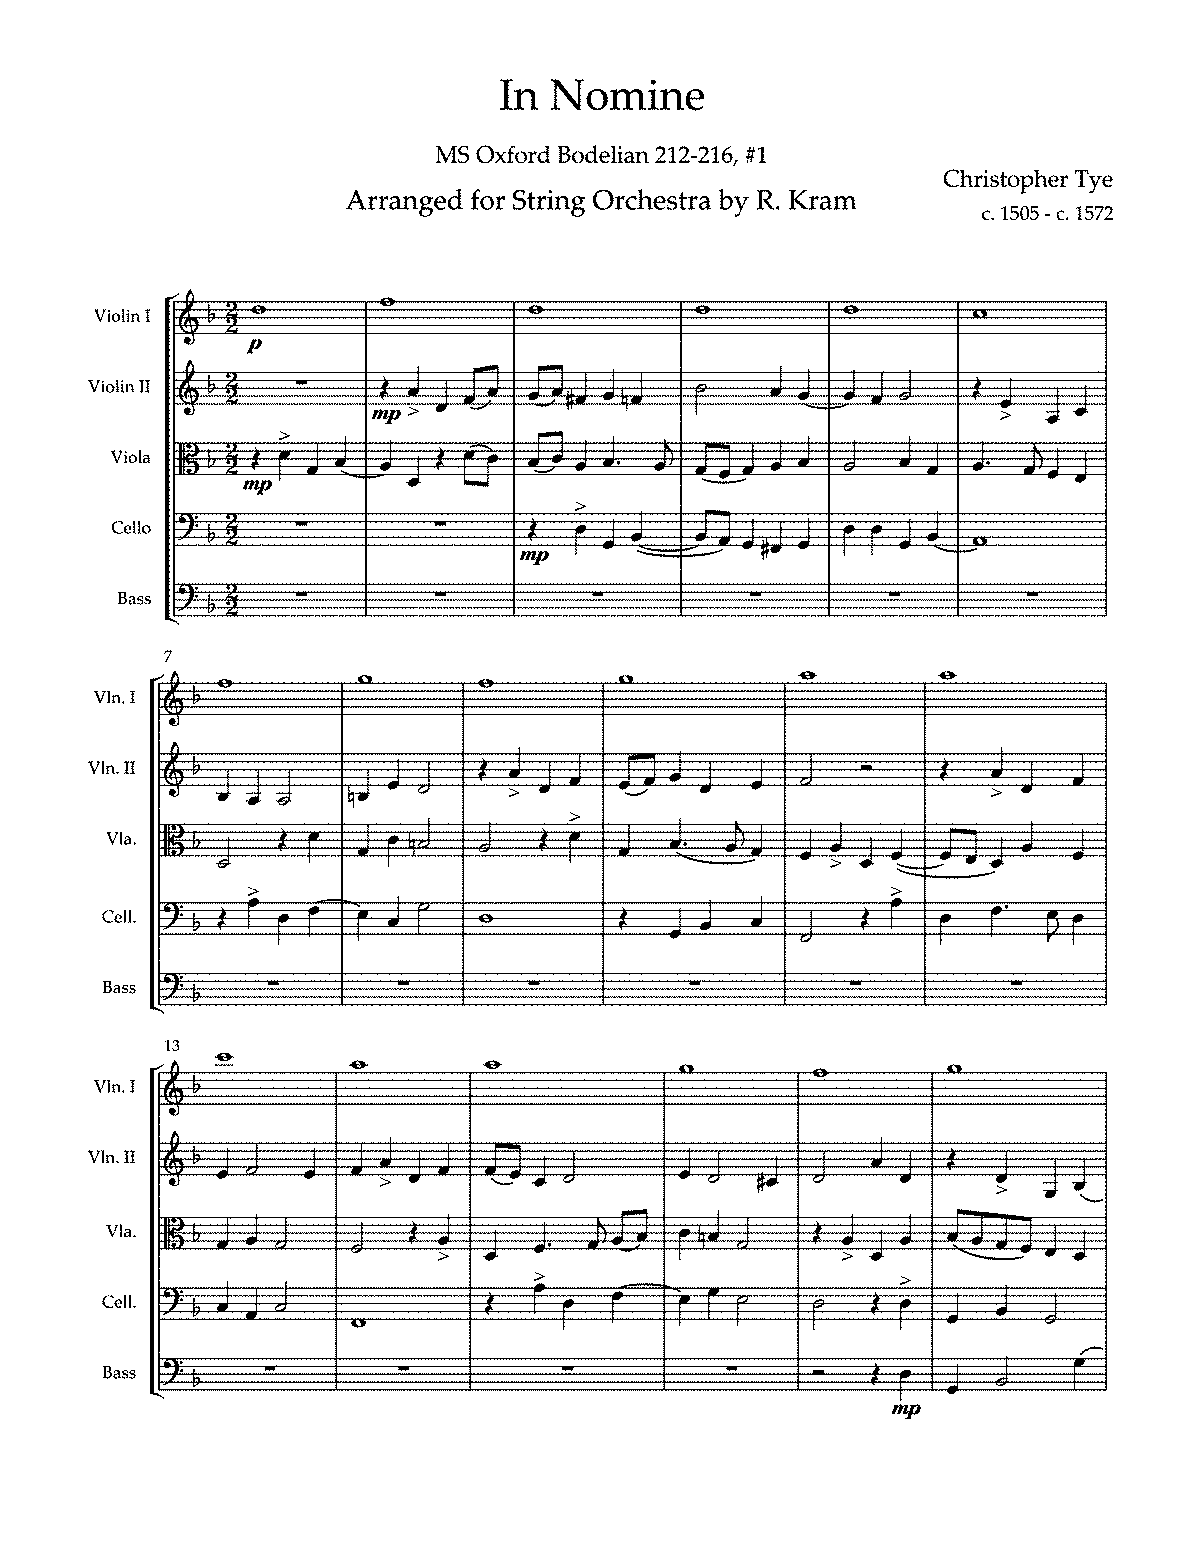 PMLP200492-Tye - In Nomine Orch.pdf